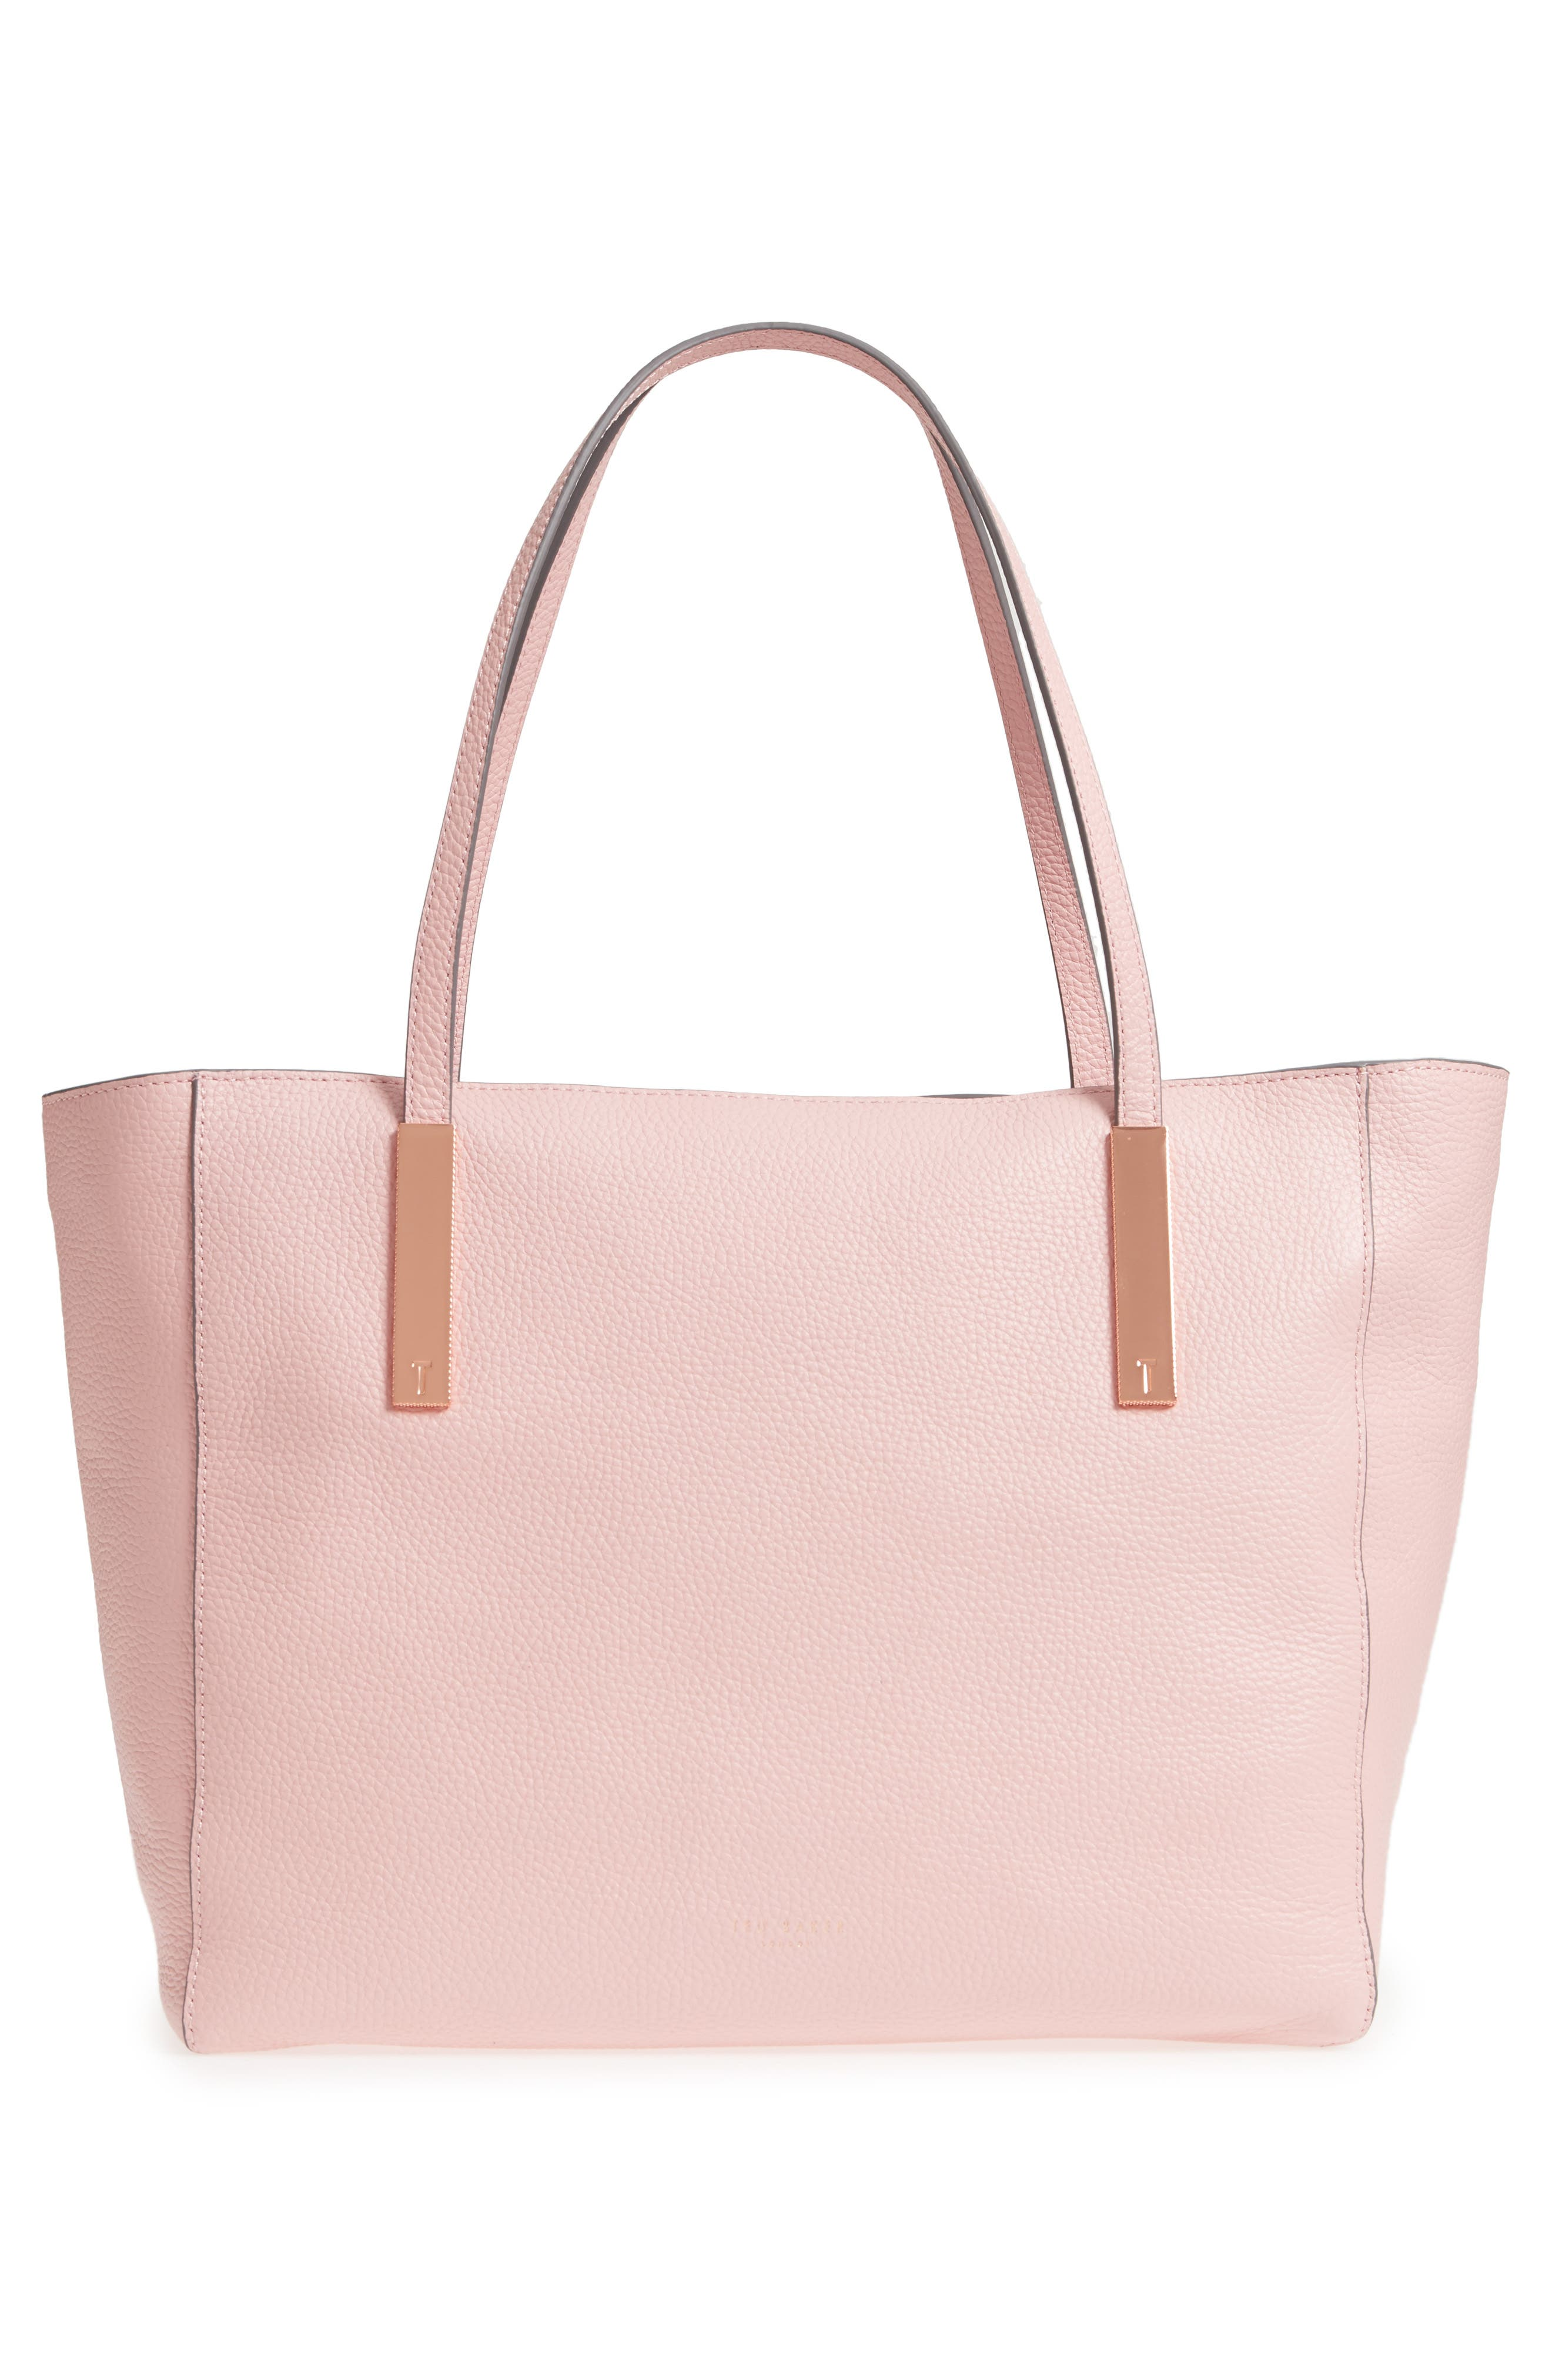 Palace Gardens Large Leather Tote,                             Alternate thumbnail 3, color,                             Dusky Pink